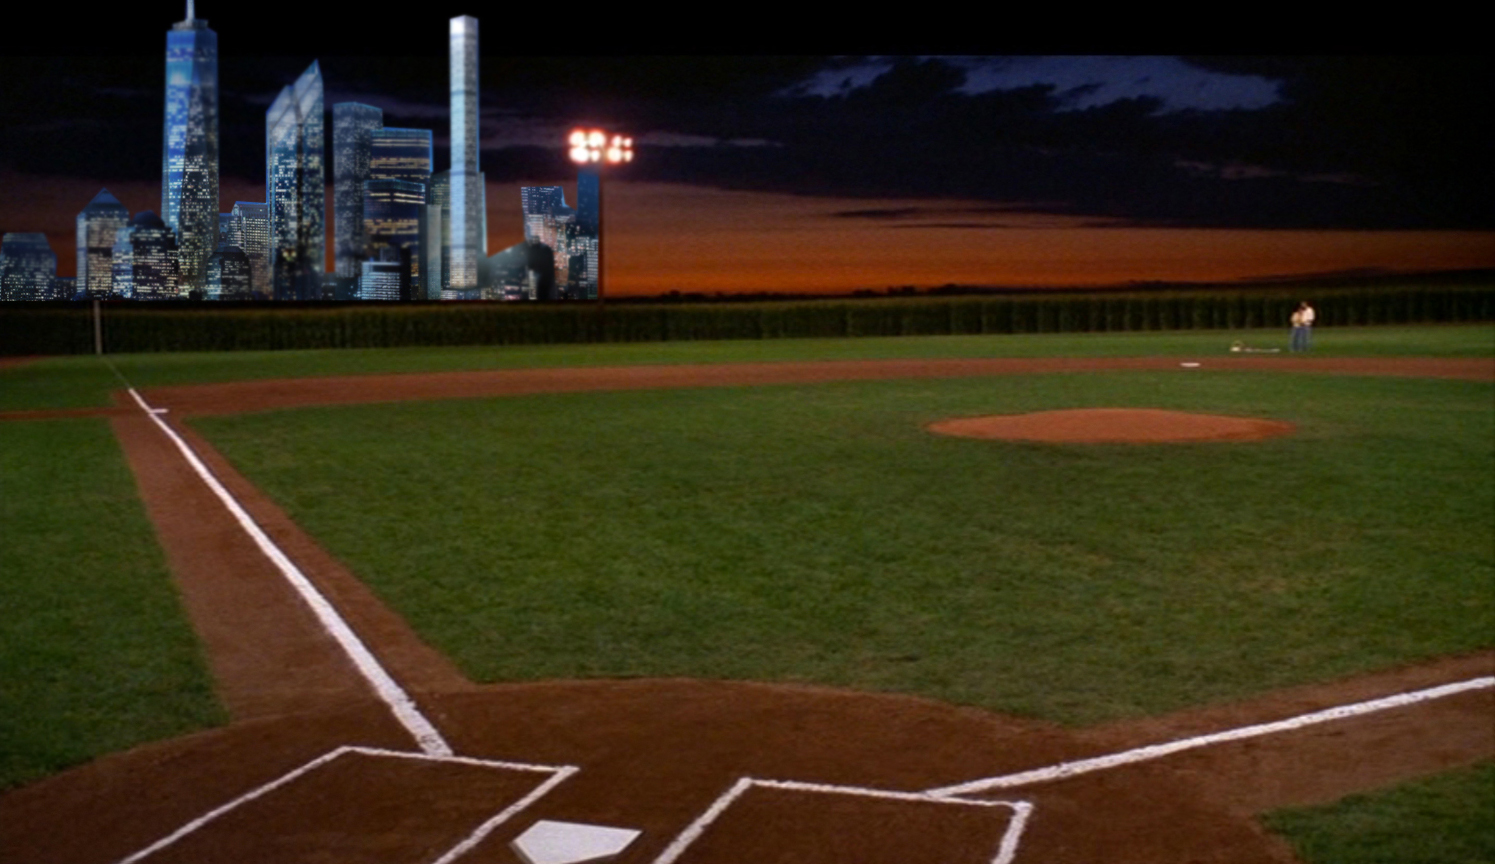 Field of Dreams baseball park with skyscrapers